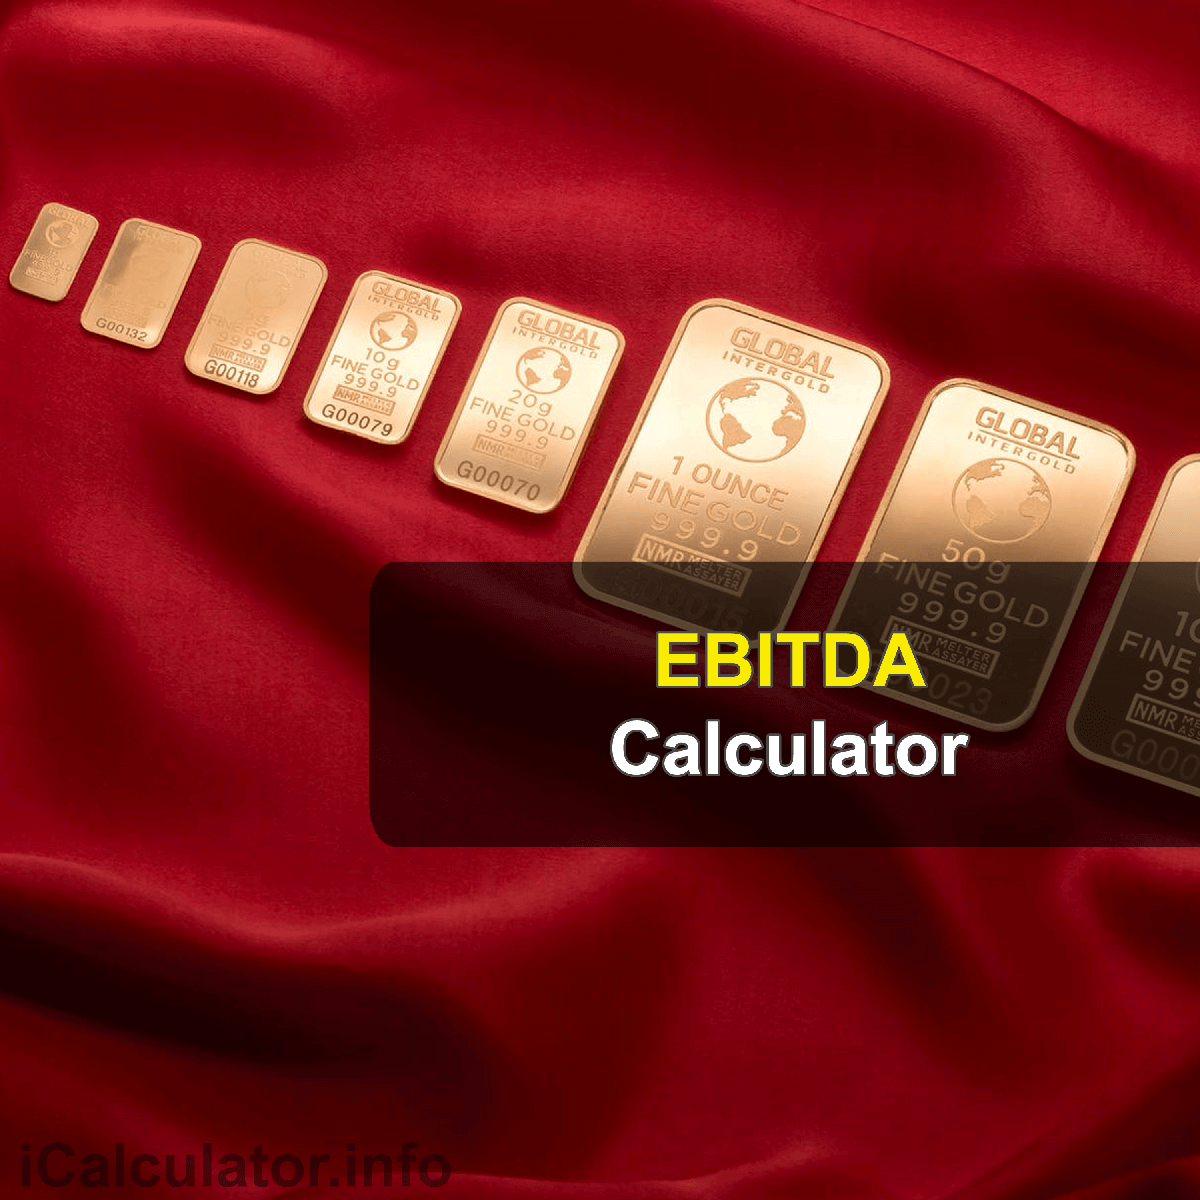 EBITDA Calculator. This image provides details of how to calculate the earnings before interest, taxes, depreciation and amortization using a calculator and notepad. By using the EBITDA model formula, the EBITDA Calculator provides a true calculation of the current value of a company's stock is the sum of all its future dividend payments when discounted back to their present value.